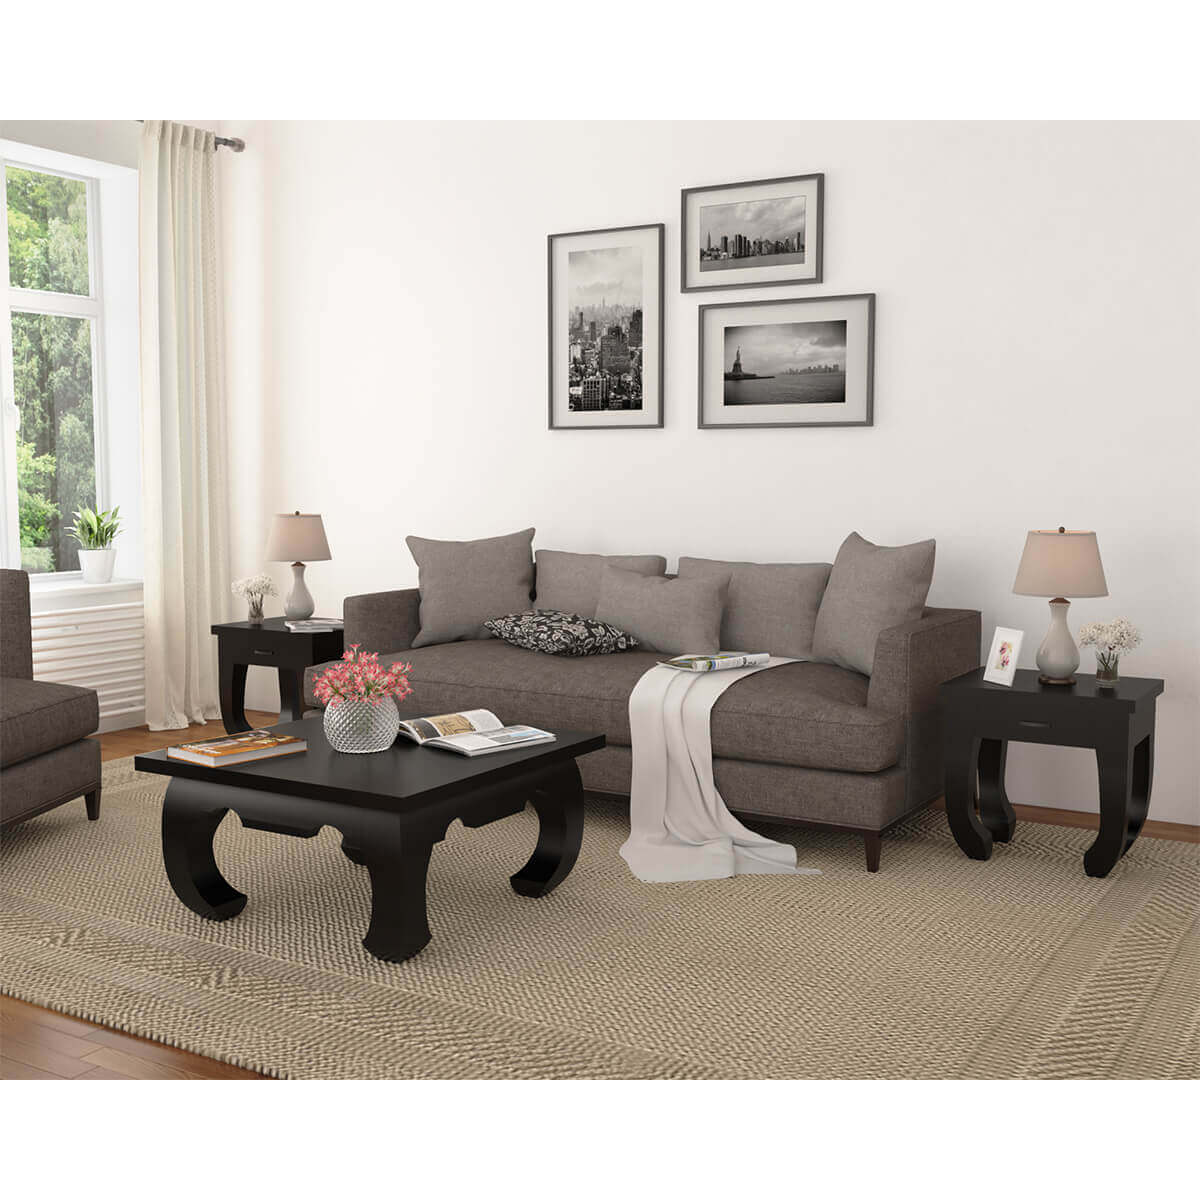 Black Solid Wood Coffee Table: Ming Asian Black Classical Style Solid Wood Coffee Table Set